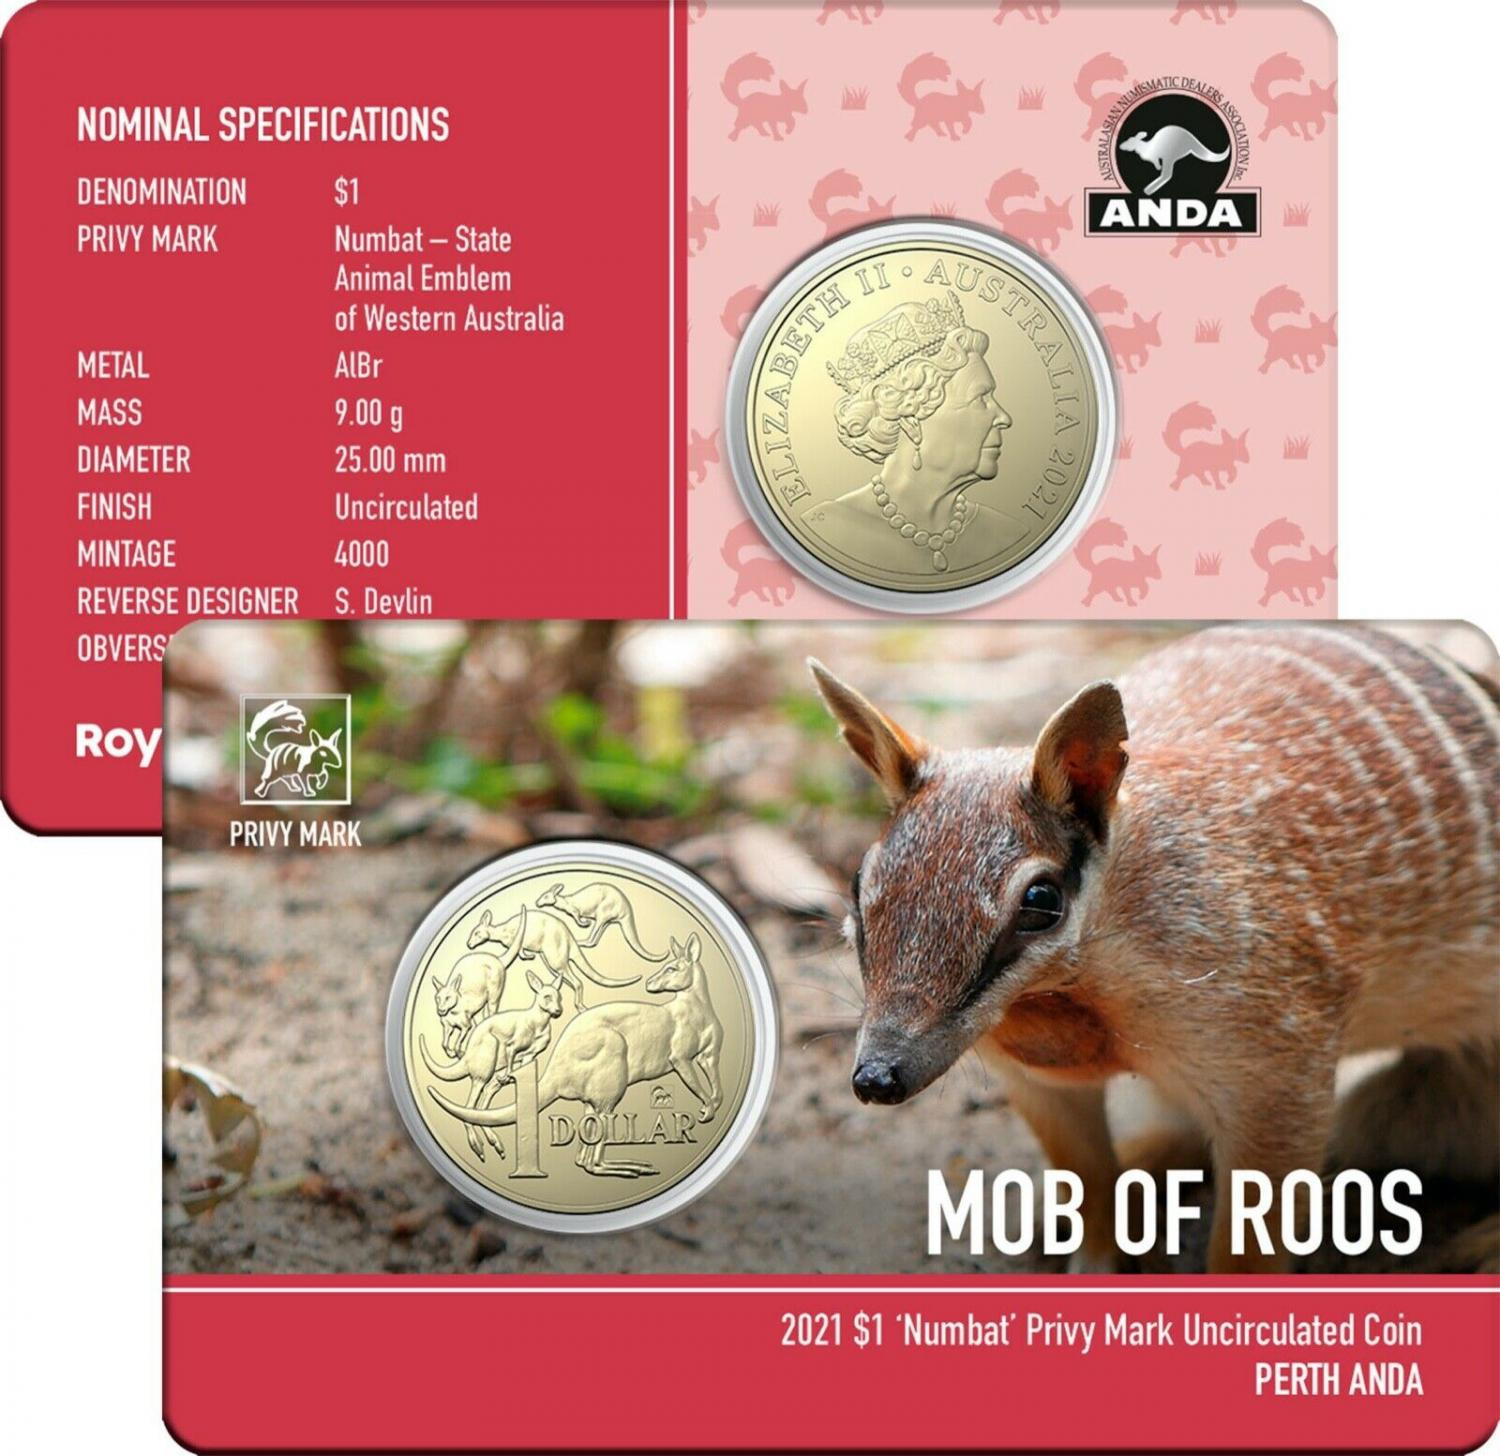 Thumbnail for 2021 Australian Mob of Roos $1 Coin - Numbat Privymark - Perth ANDA Show